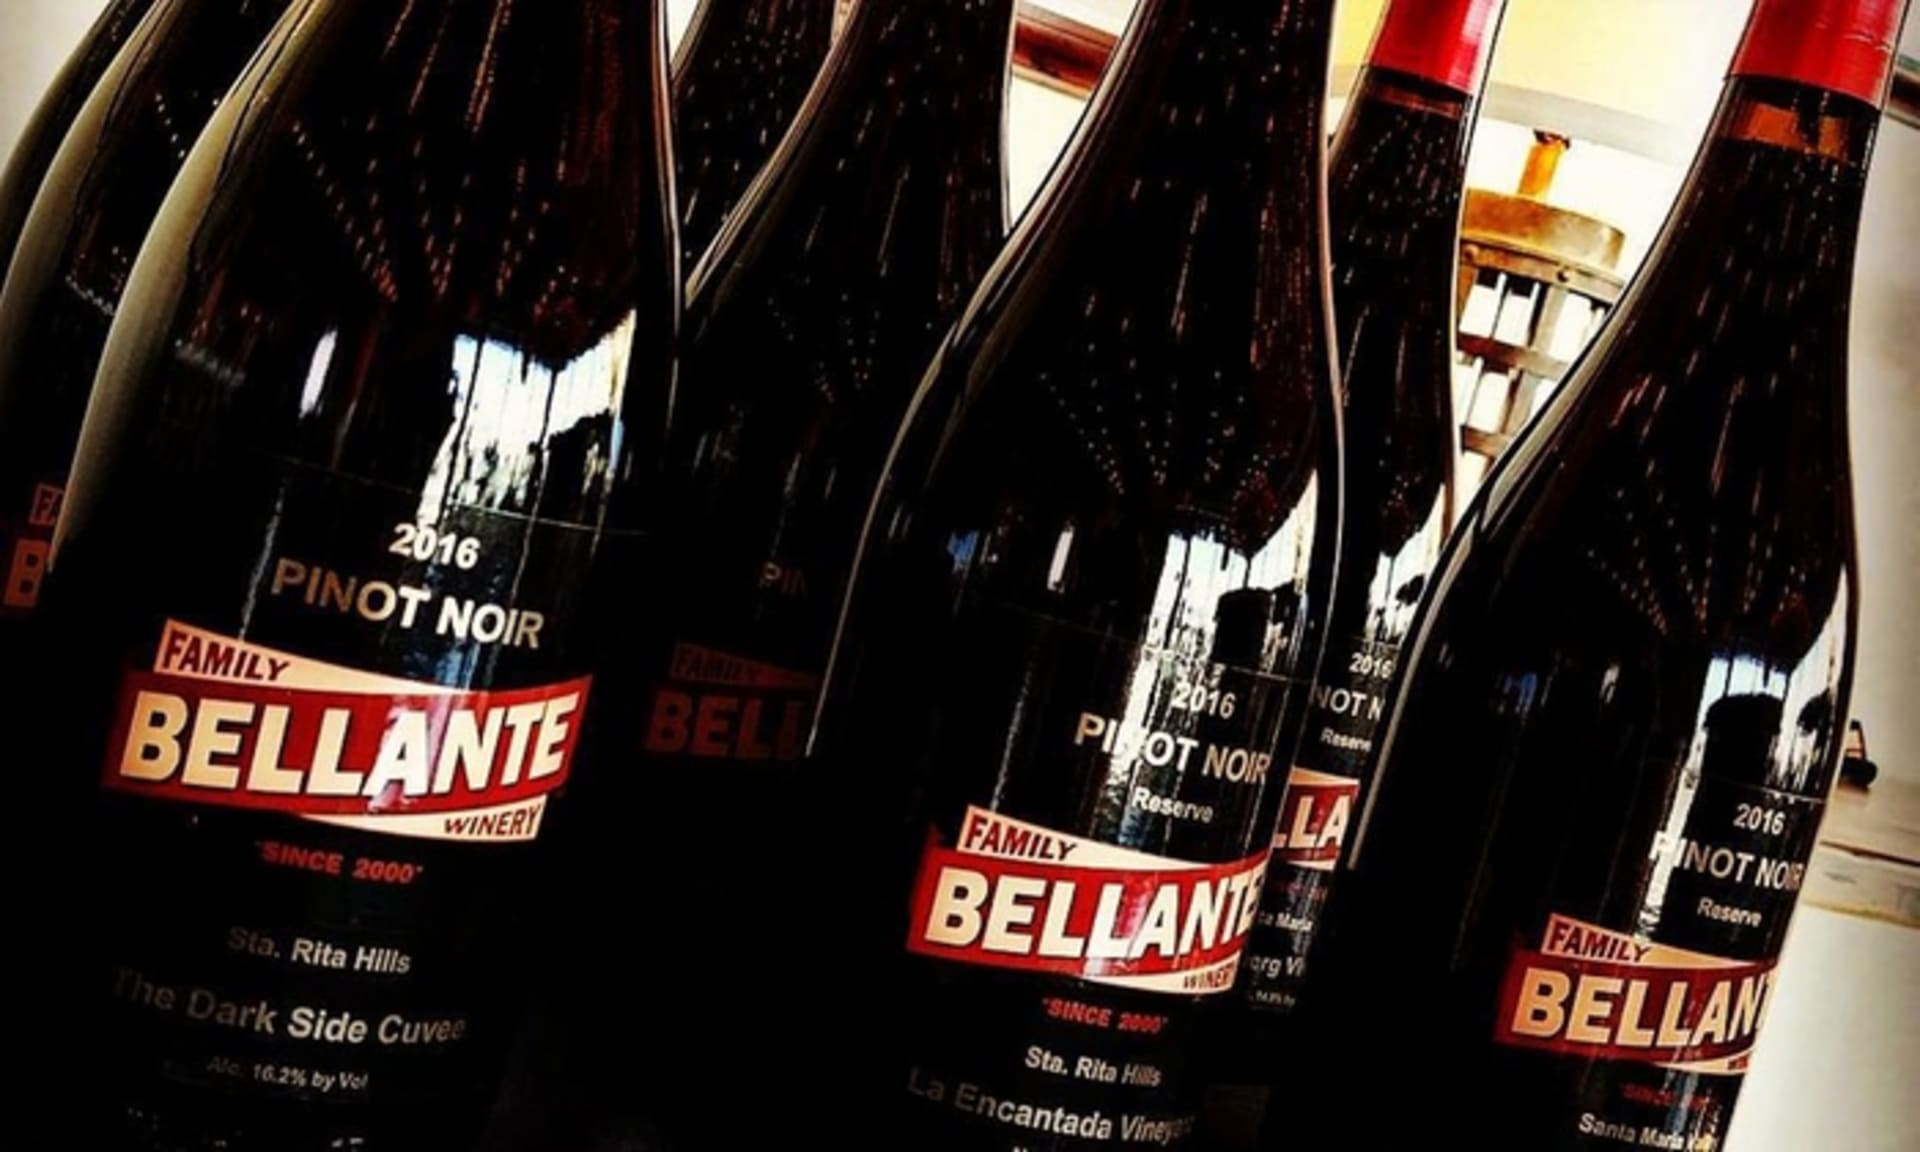 NOV 8 | BELLANTE FAMILY WINERY